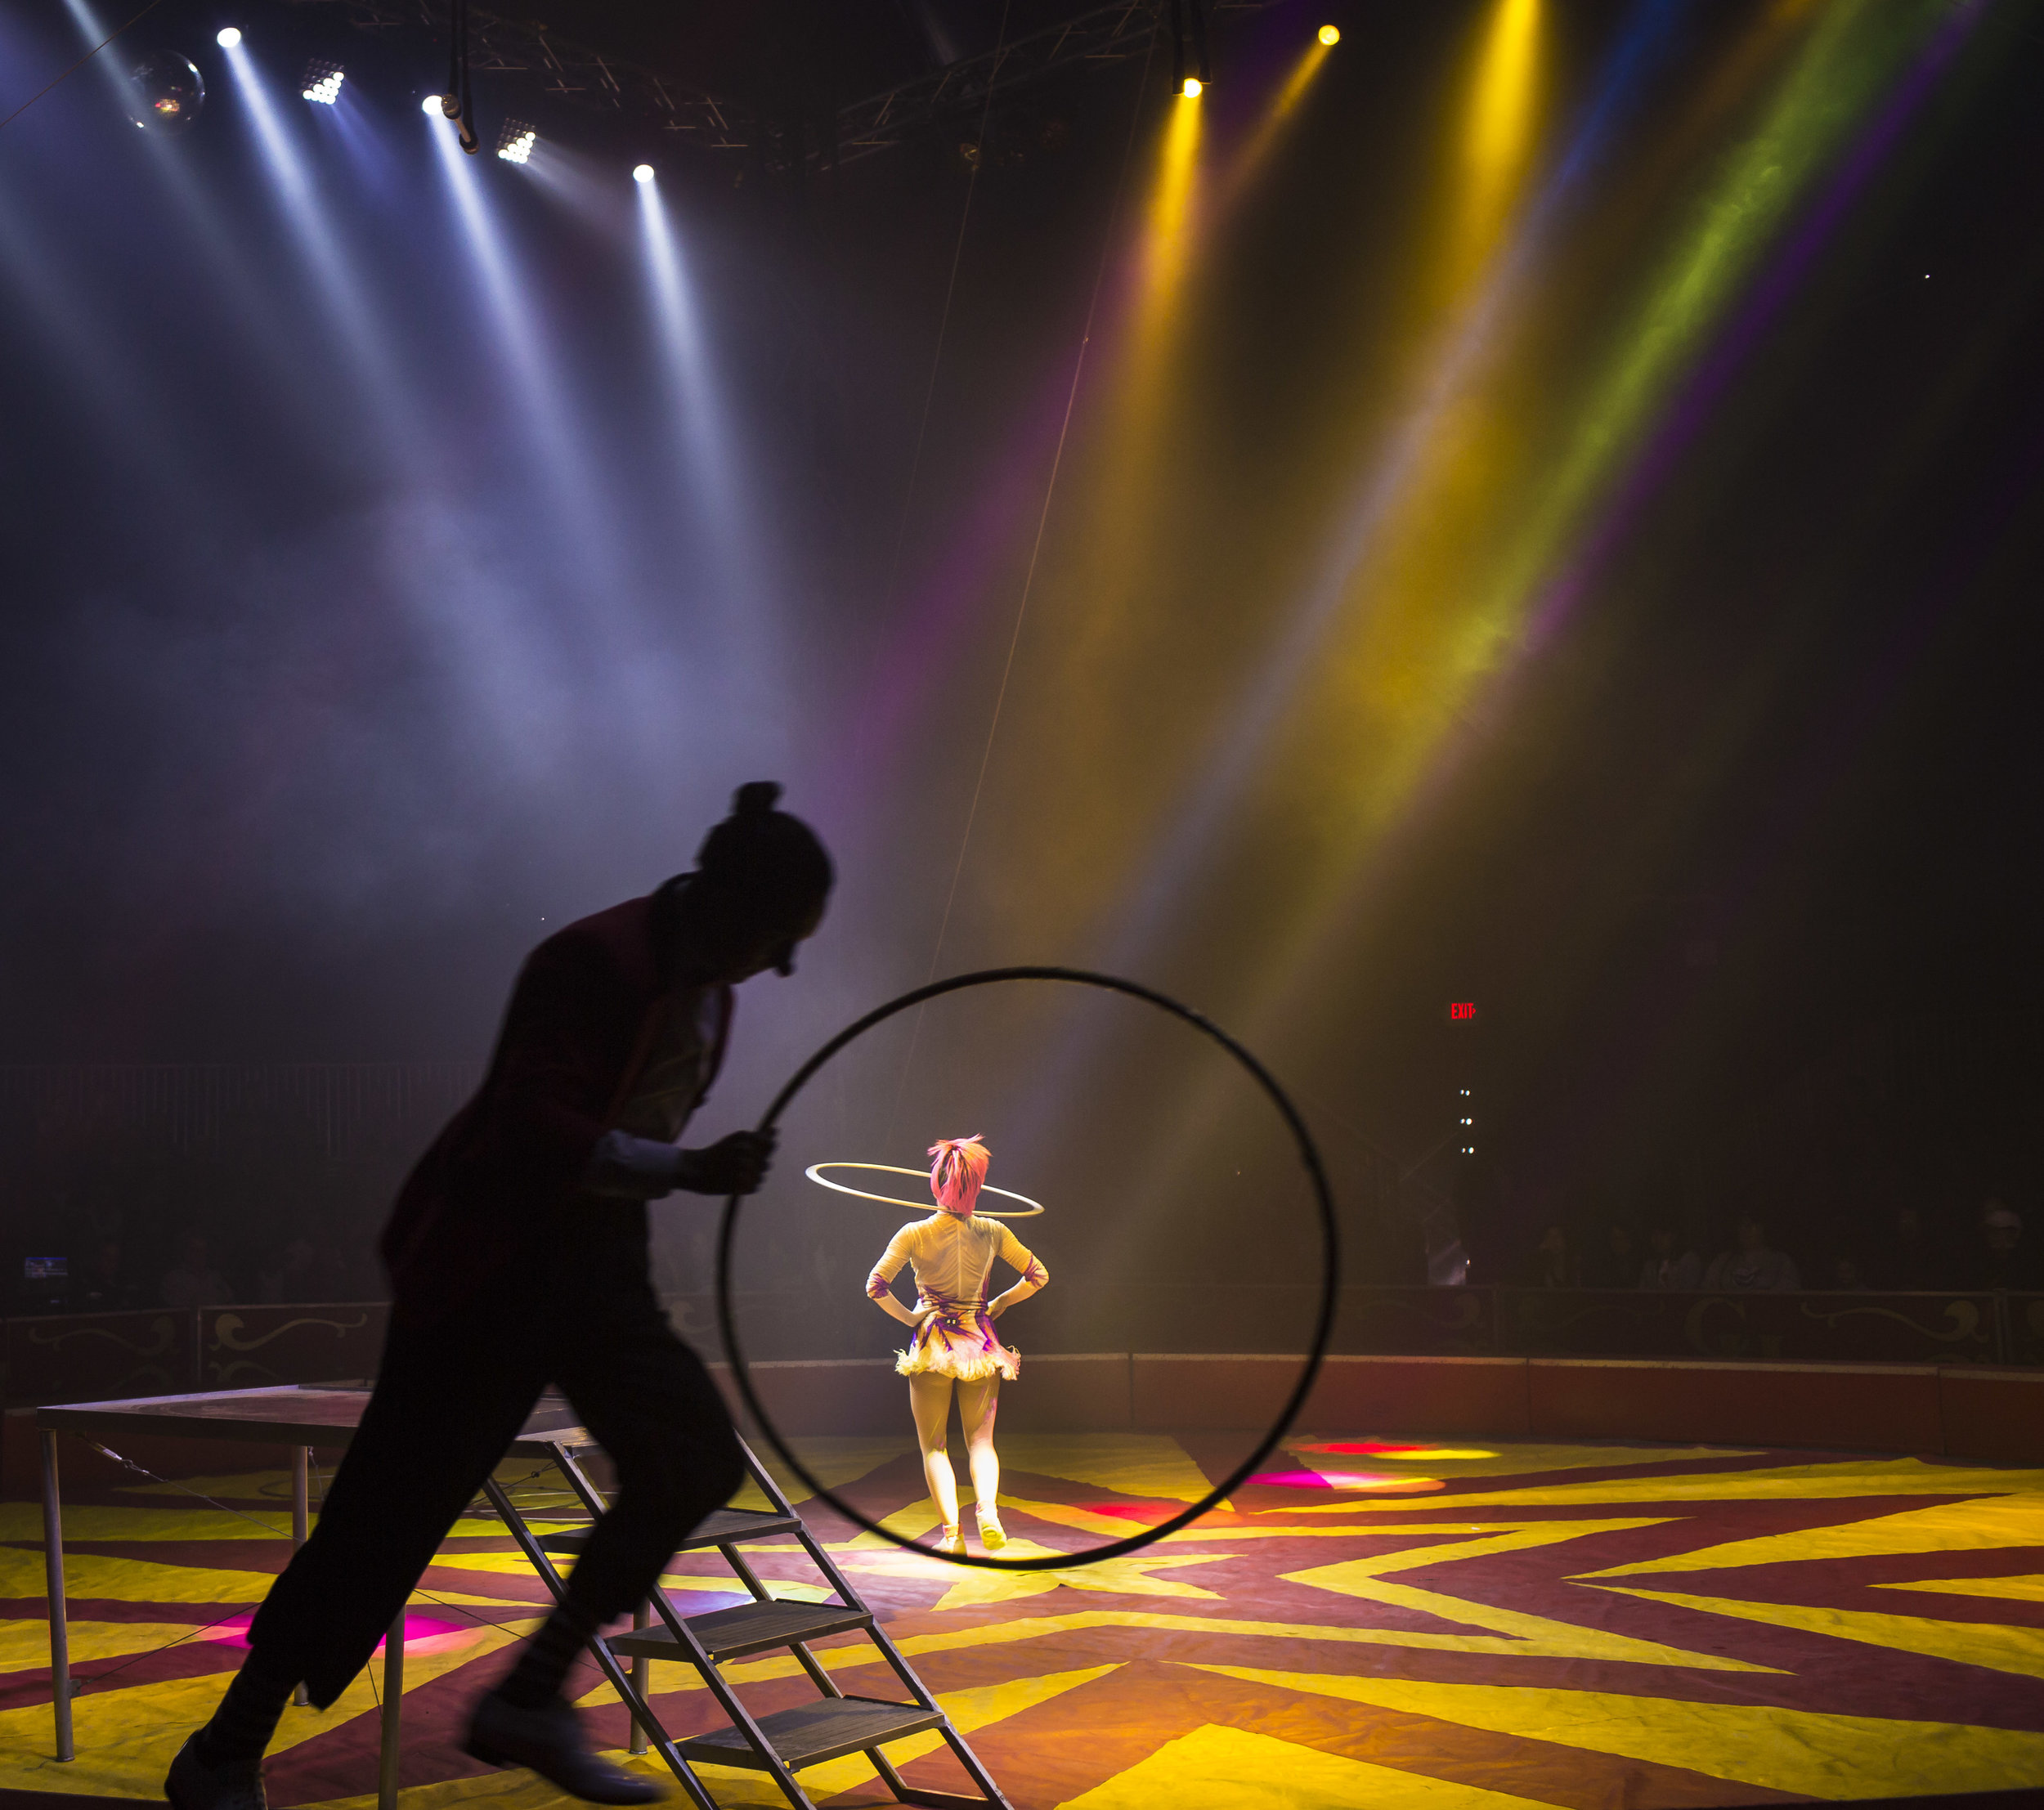 Crystal Coronas performs her opening hula hoop act as Cristhian Videla runs along the ring edge during a Coronas of Hollywood circus show at The Great New York State Fair in Syracuse, NY, Sept. 3, 2017.